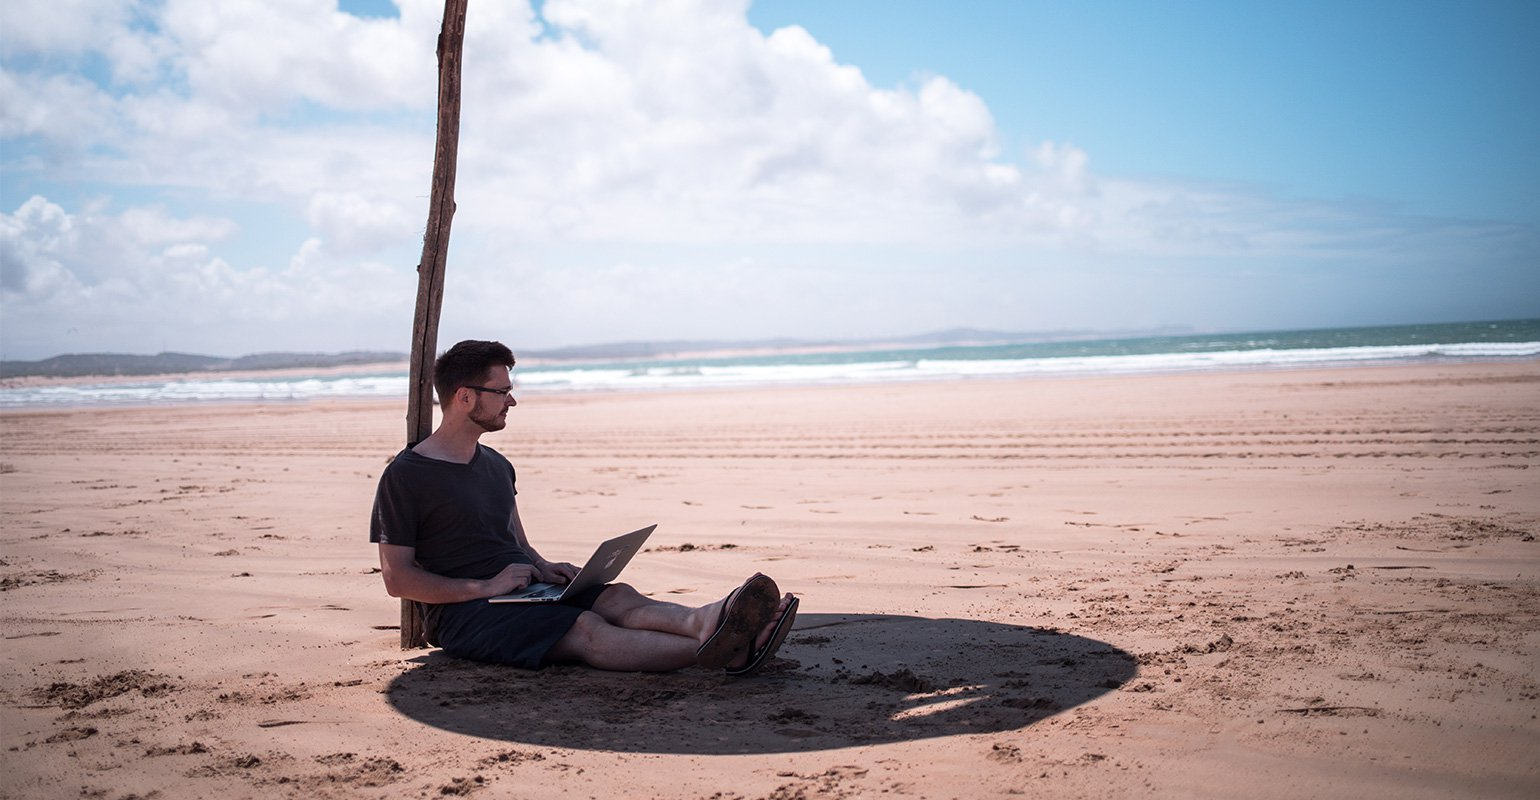 Is remote work an opportunity or a threat?